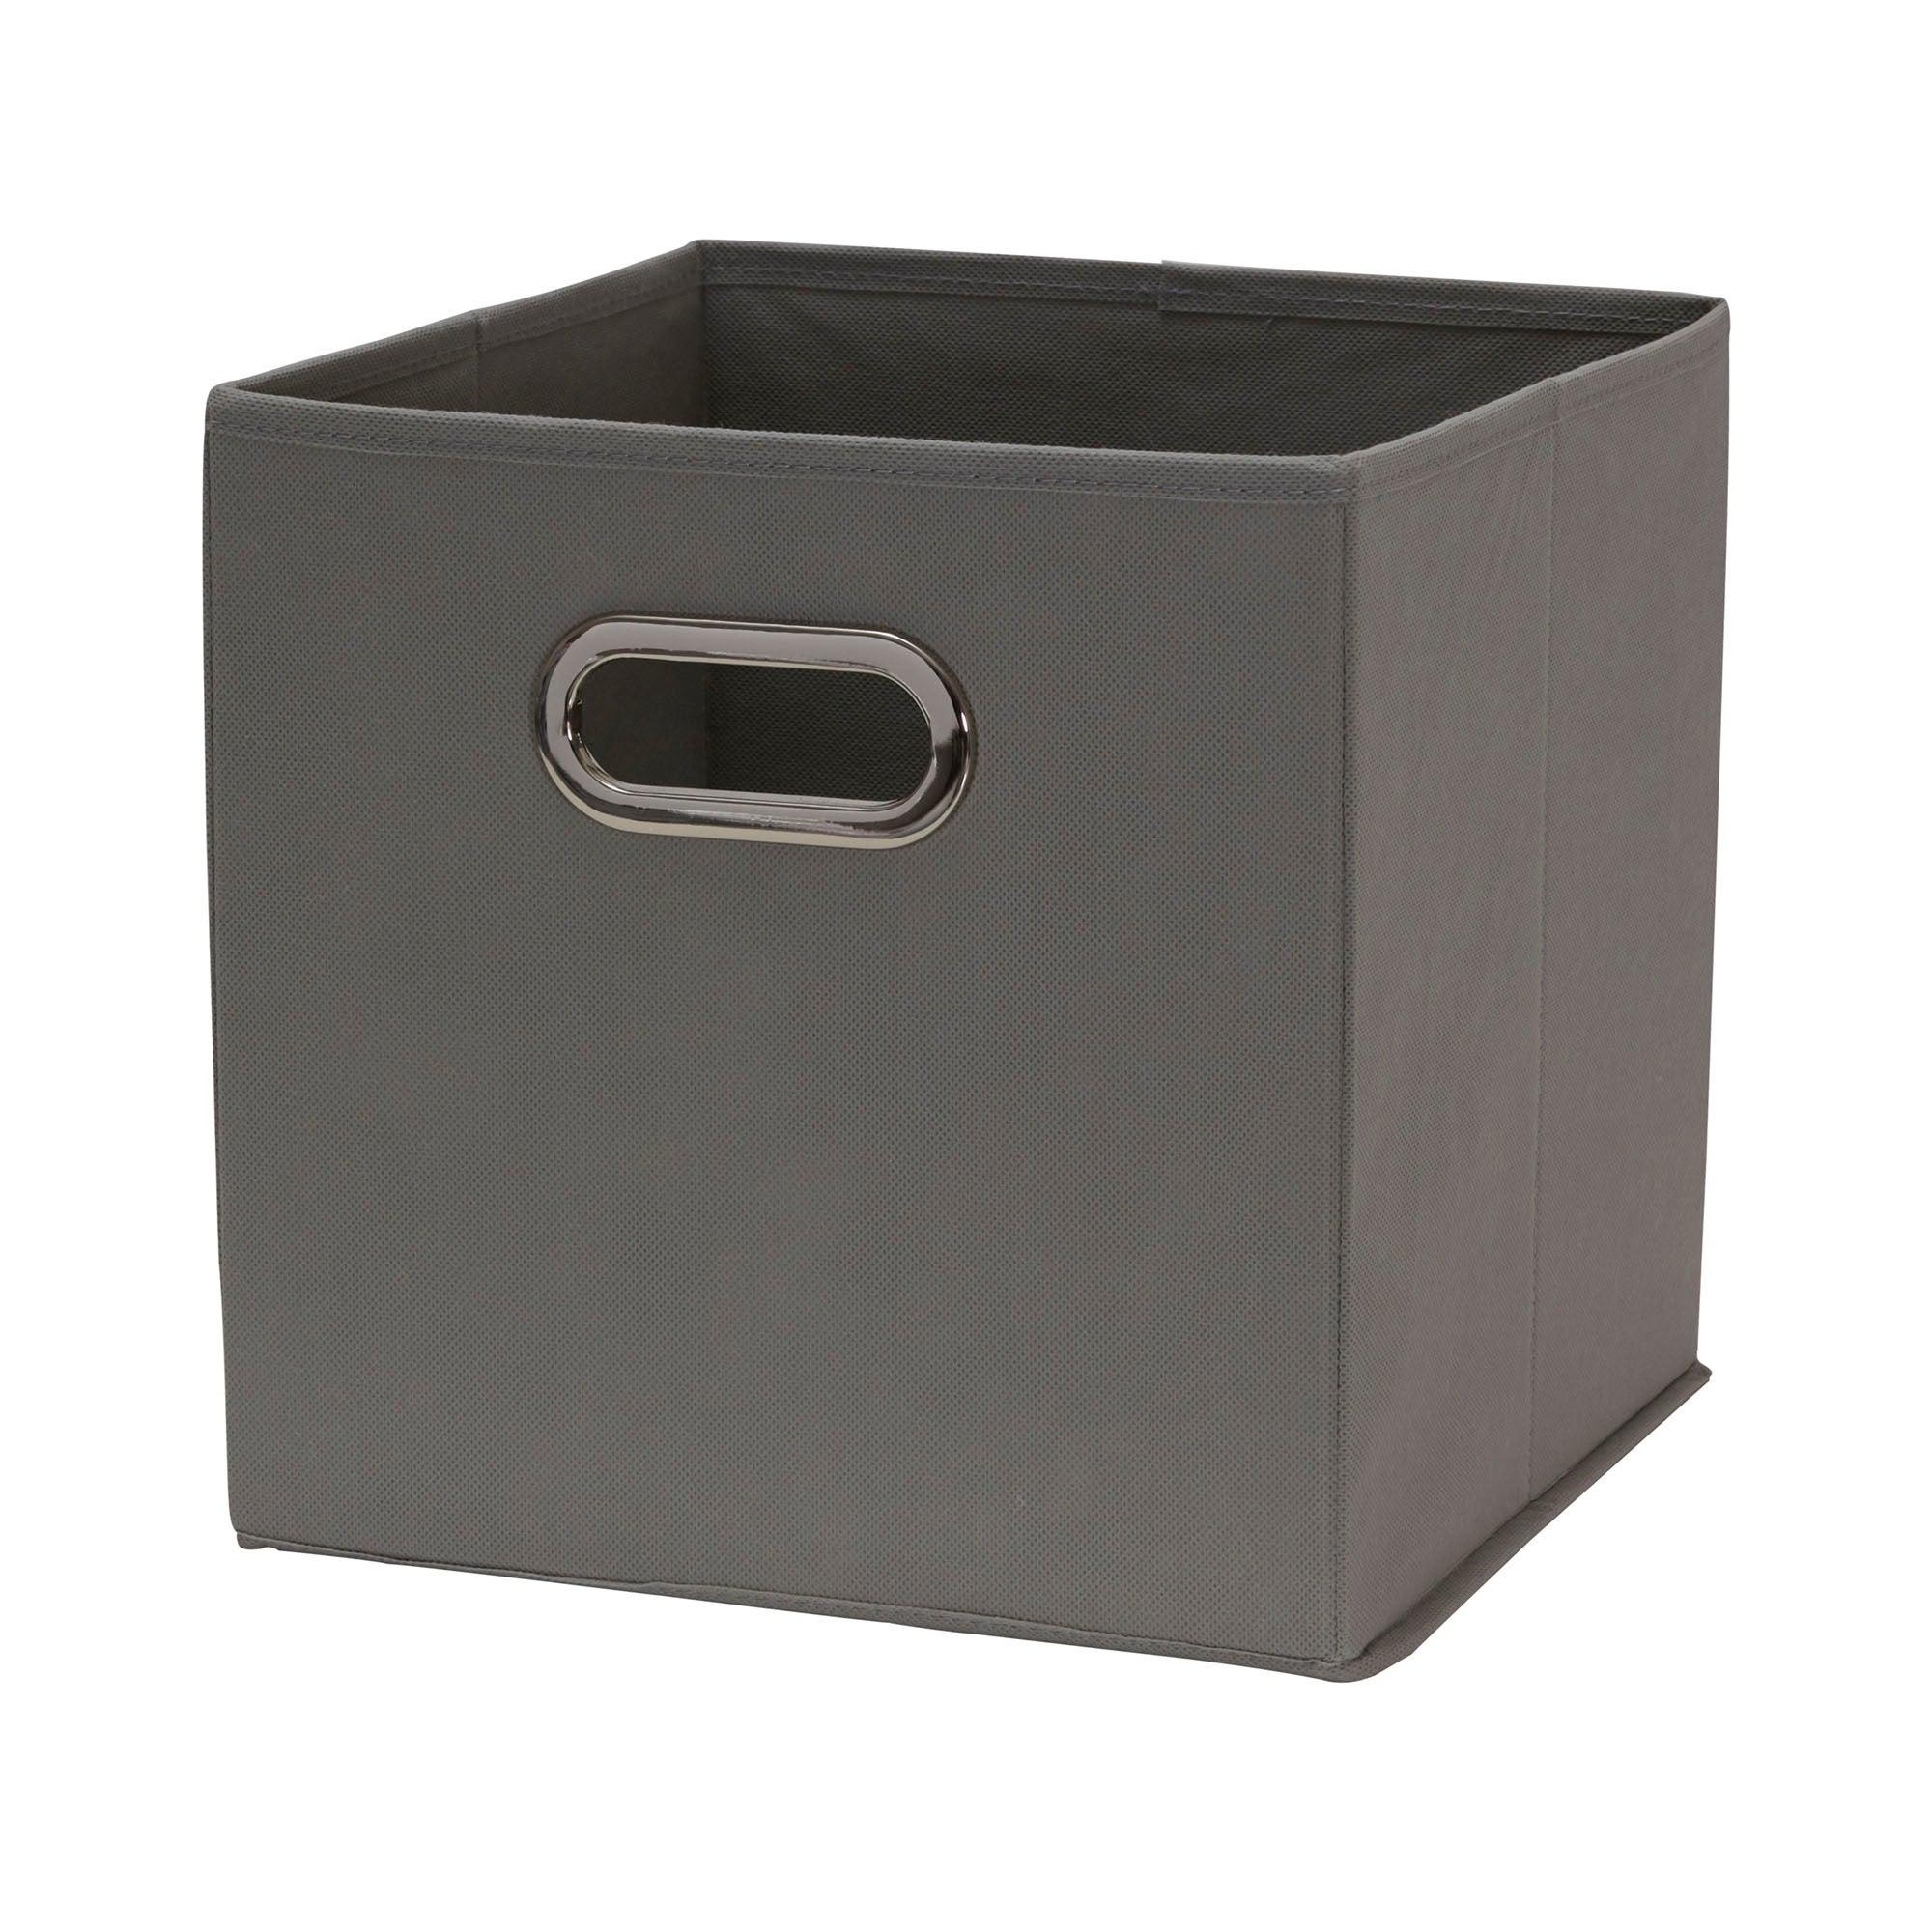 Beau Shop Househole Essentials Foldable Fabric Storage Cubes   Set Of 6   Teafog    Free Shipping On Orders Over $45   Overstock.com   17619032